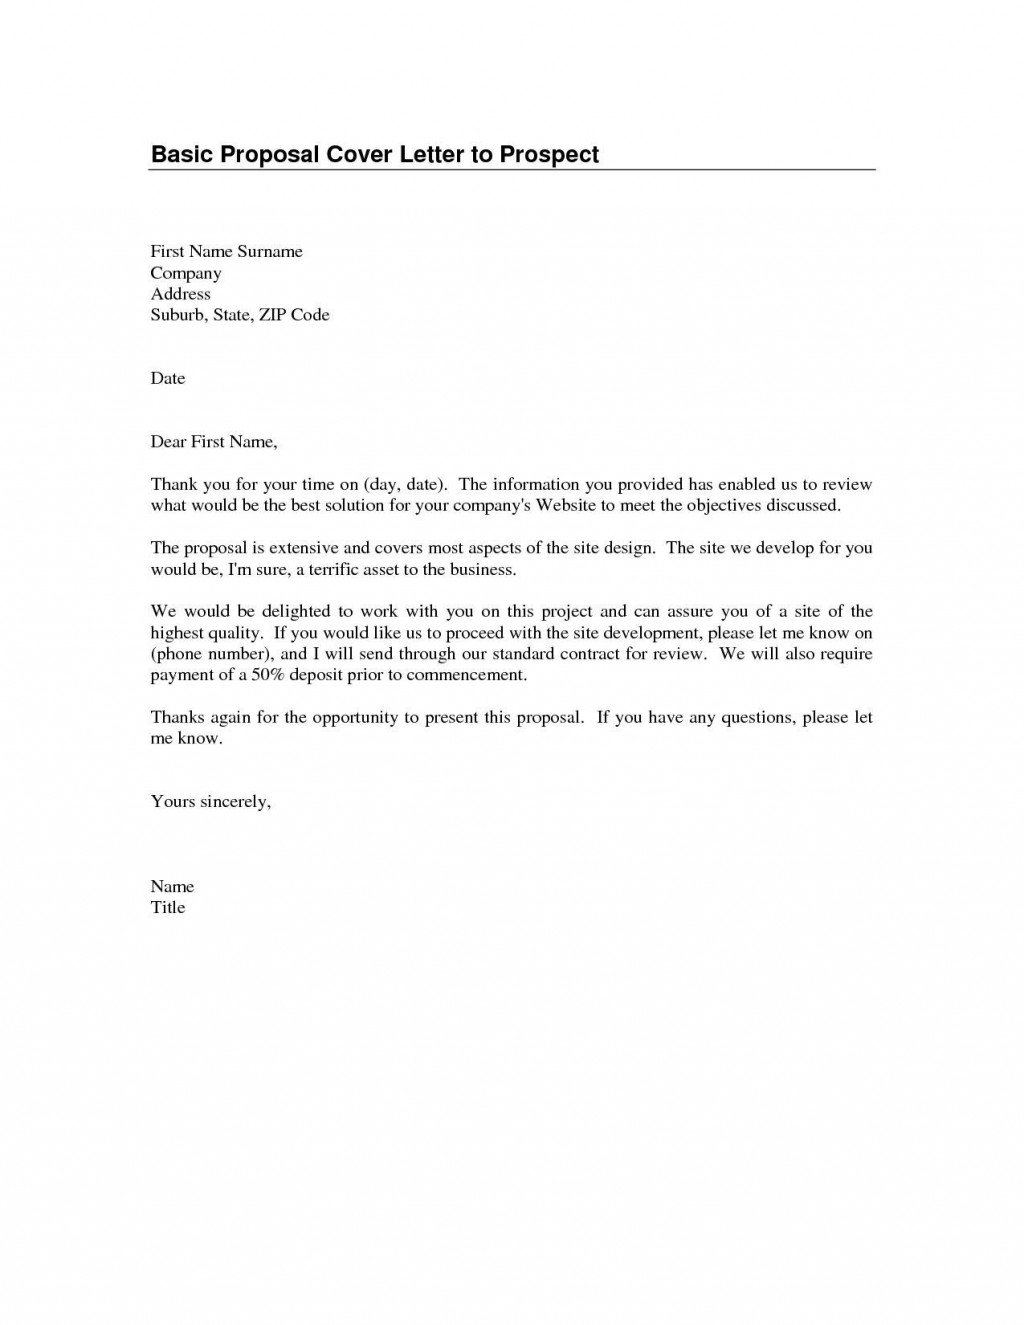 000 Archaicawful Basic Covering Letter Template Picture  Simple Application Job Sample CoverLarge